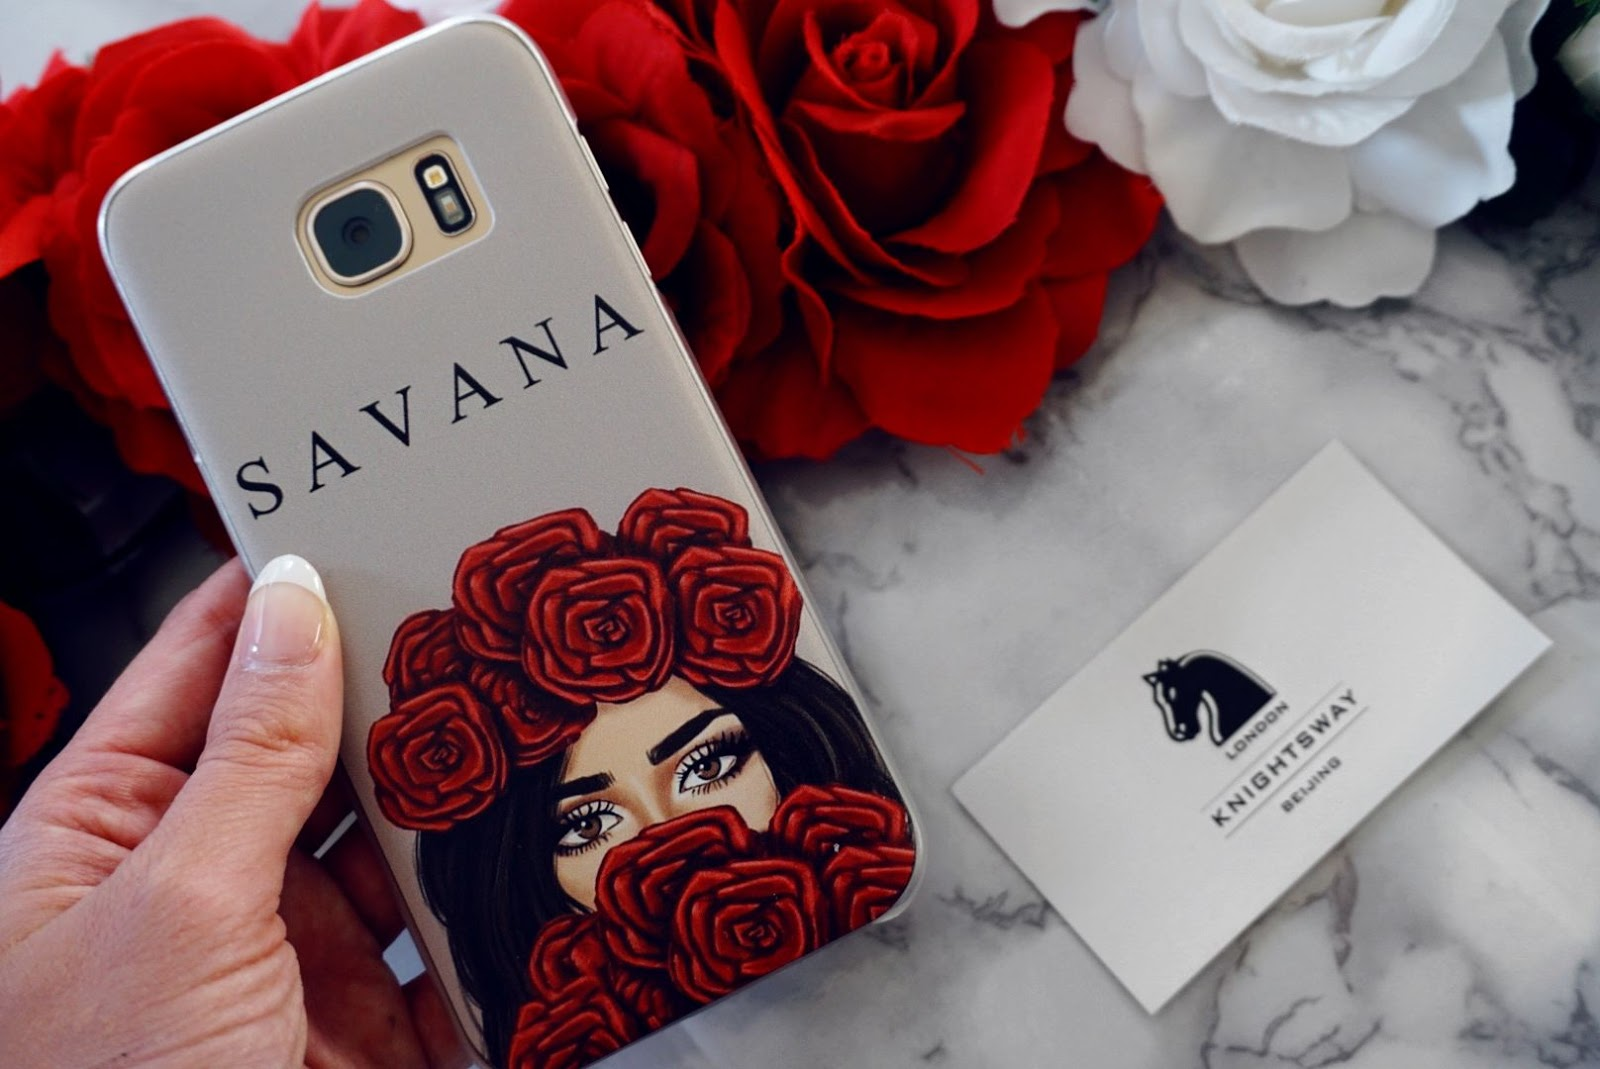 HOW TO MAKE YOUR PHONE LOOK BRAND NEW WITH PERSONALISED PHONE CASES BY KNIGHTSWAY